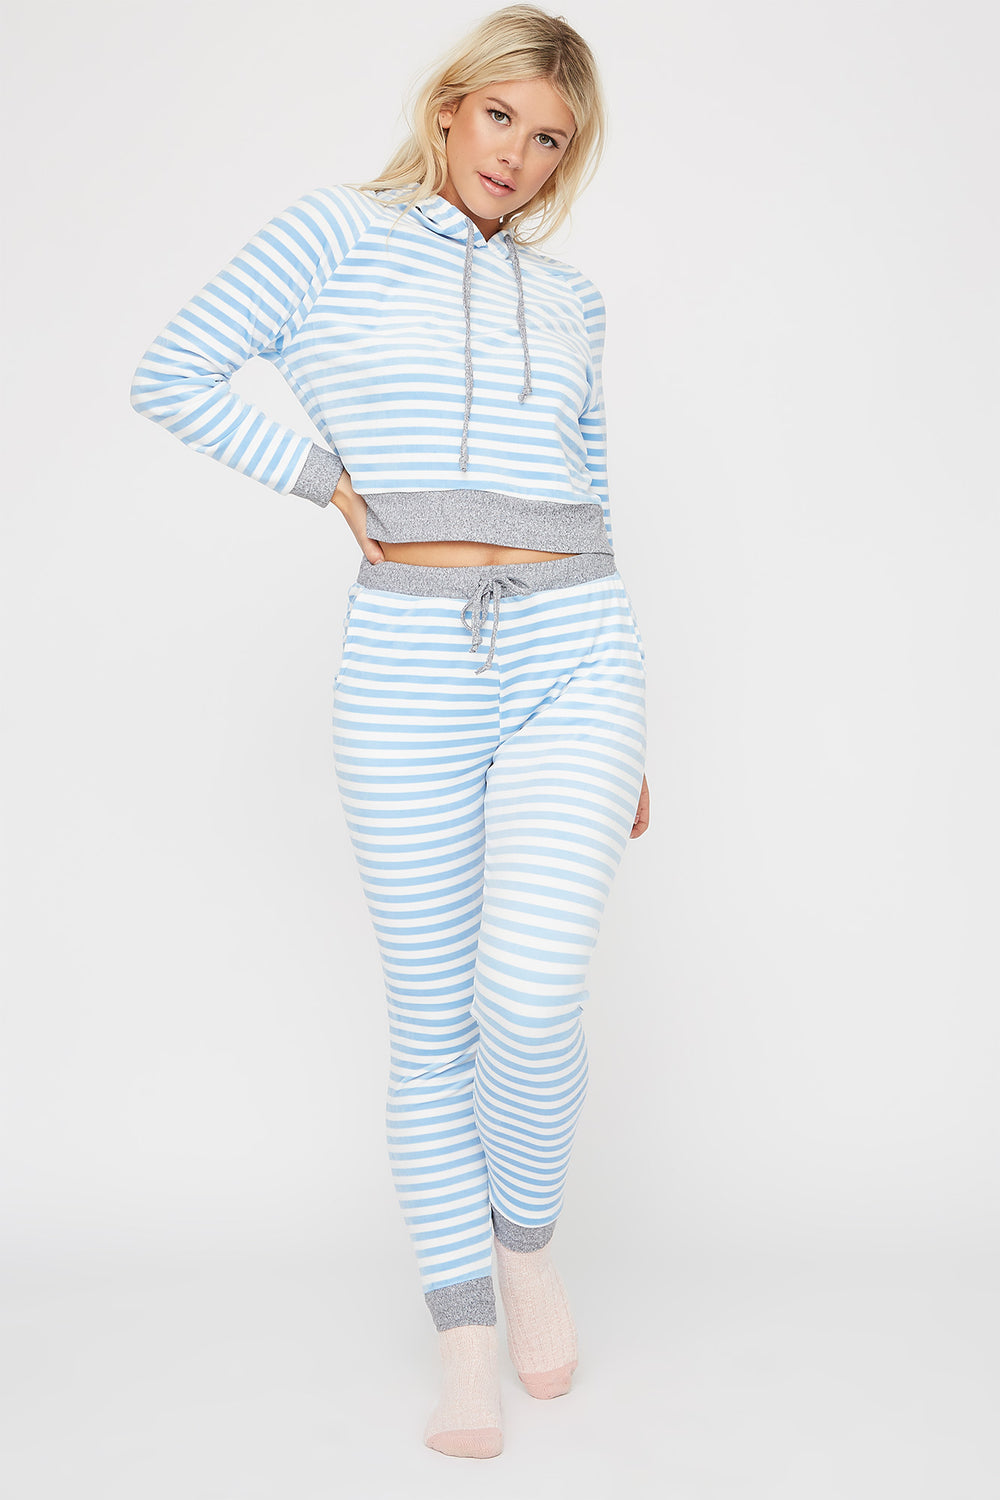 Soft Velour Printed French Terry Pajama Pant Blue